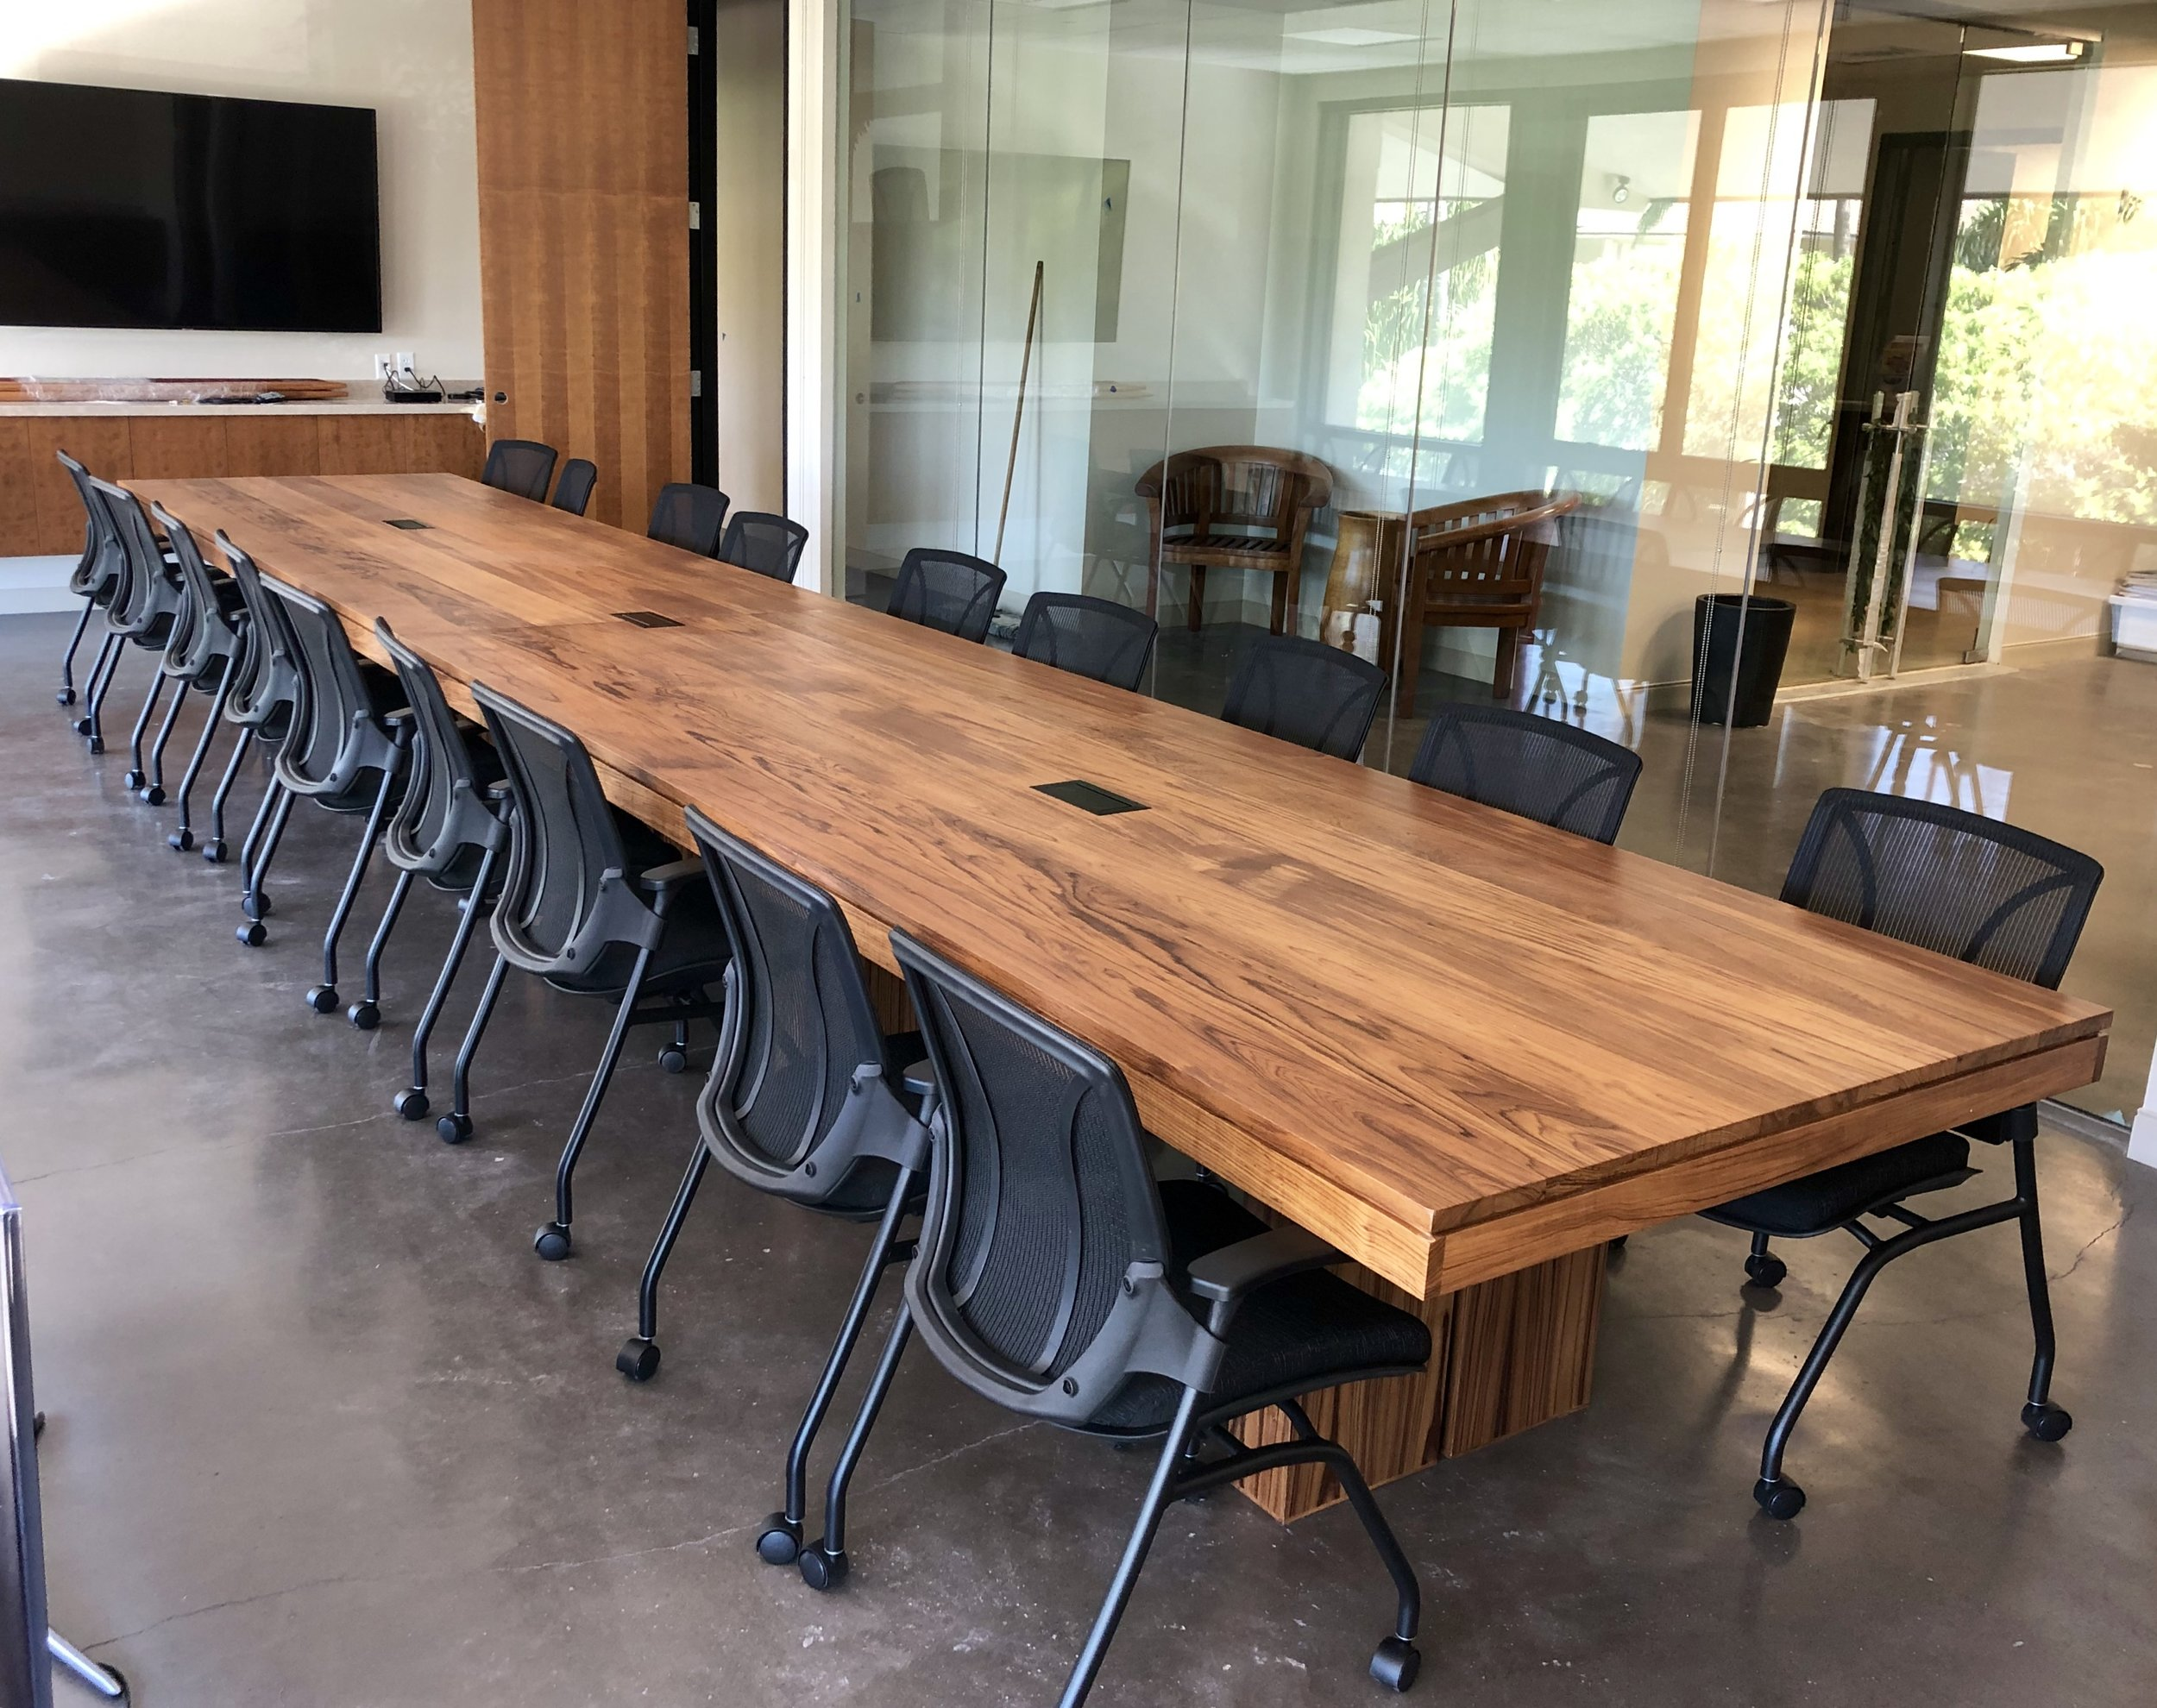 22' long teak conference table.